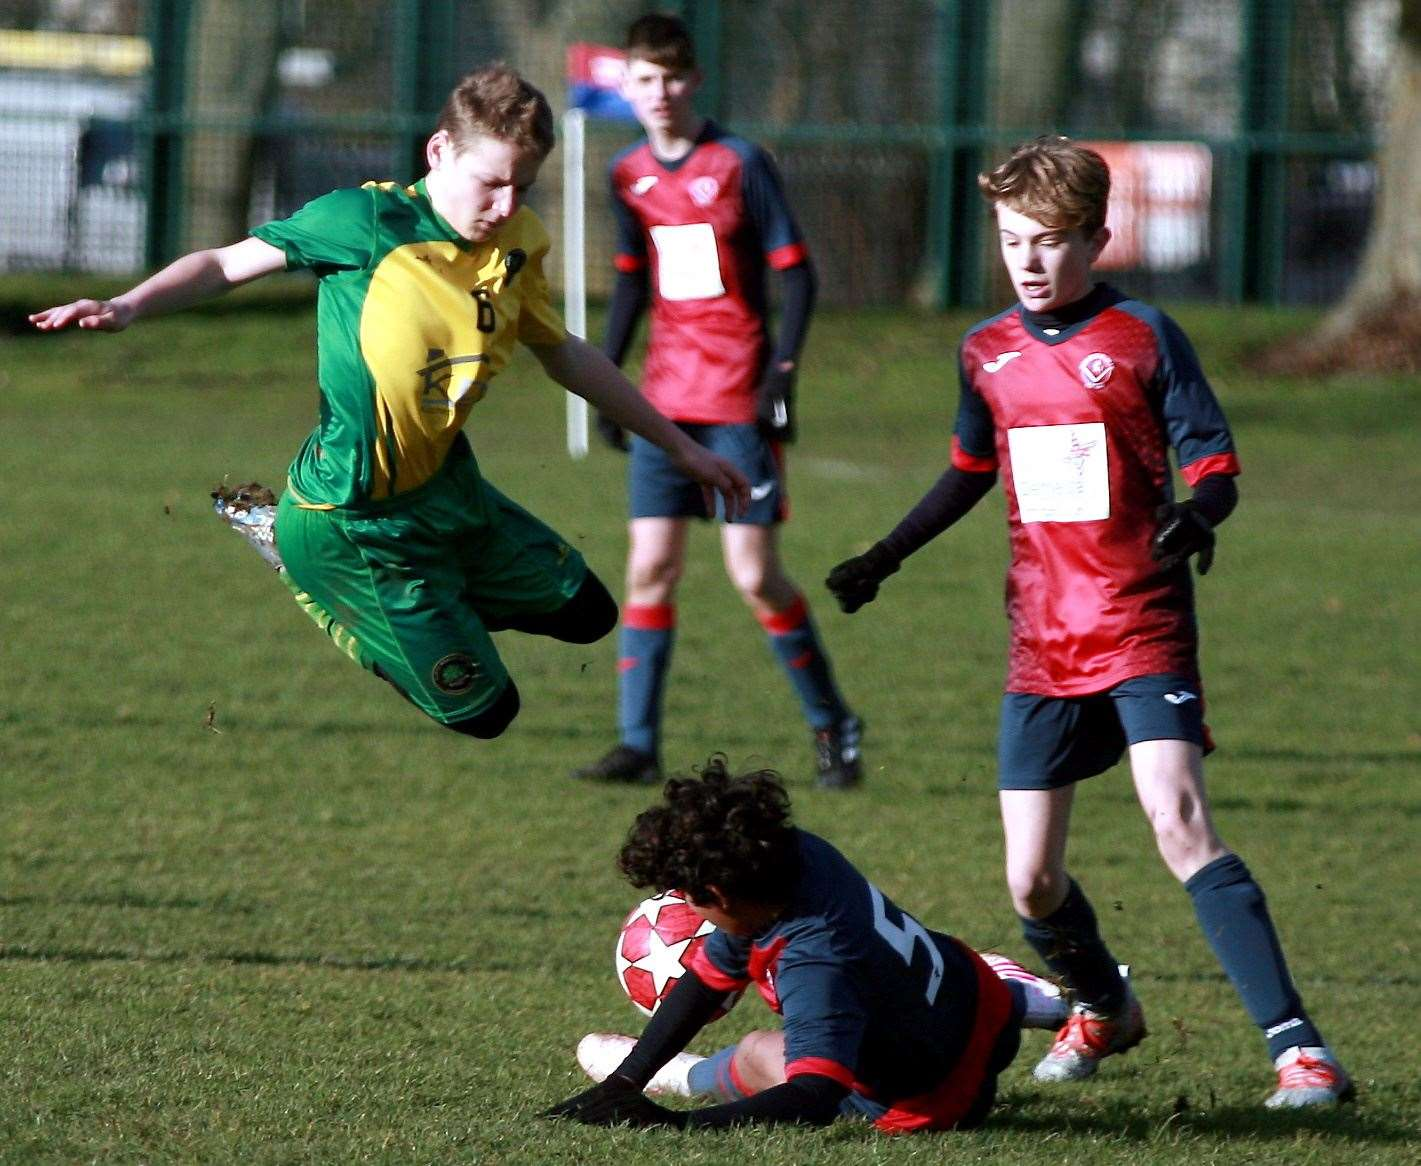 Cliffe Woods Colts under-15s (green) take evasive action against Hempstead Valley under-15s. Picture: Phil Lee FM26563336